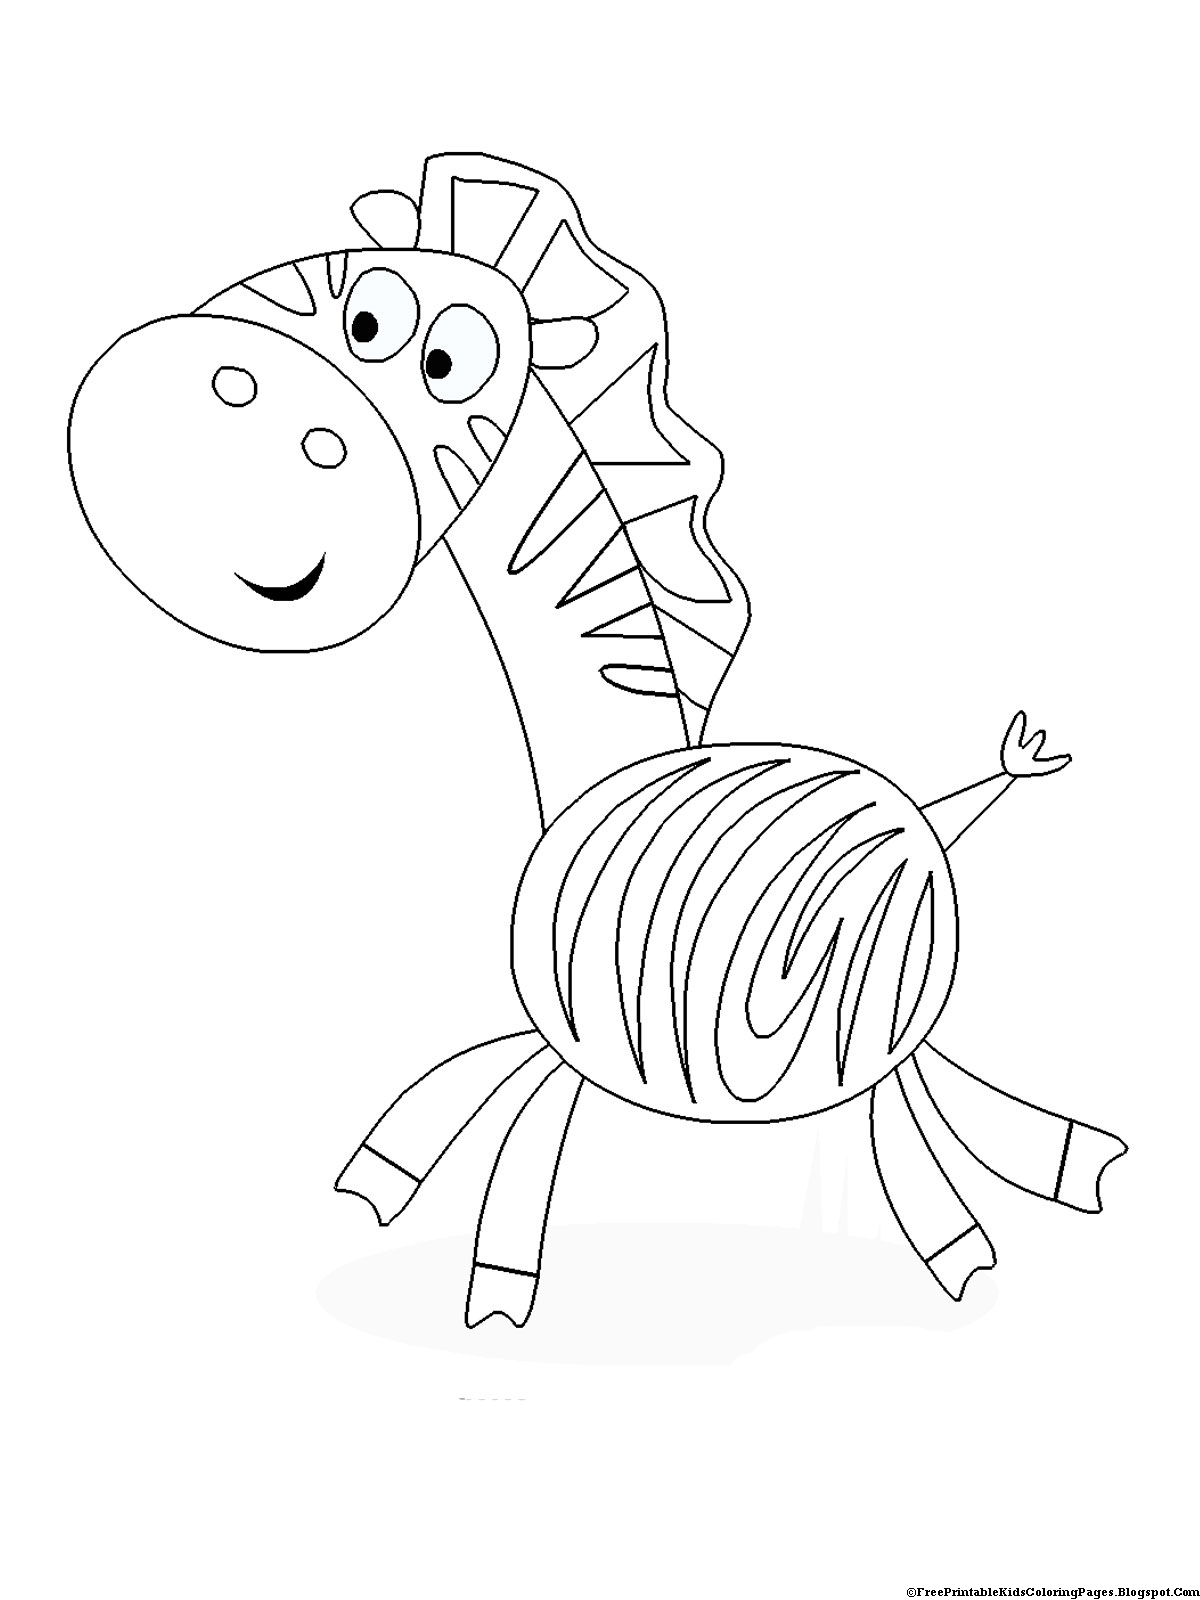 coloring pages to print for free free printable mushroom adult coloring page coloring to free pages print for